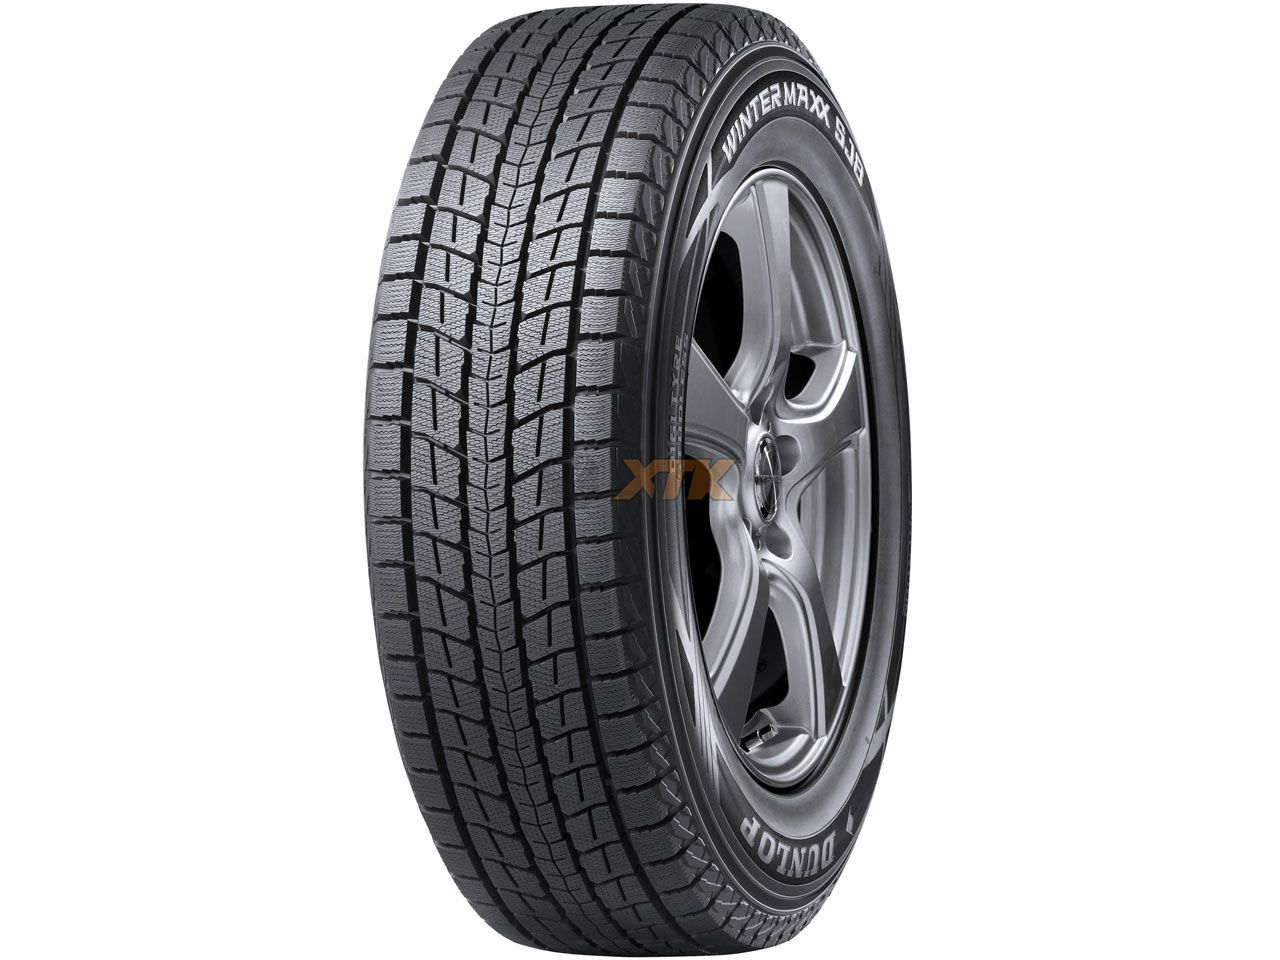 Автошина 235/65R17 108R Dunlop Winter MAXX SJ8